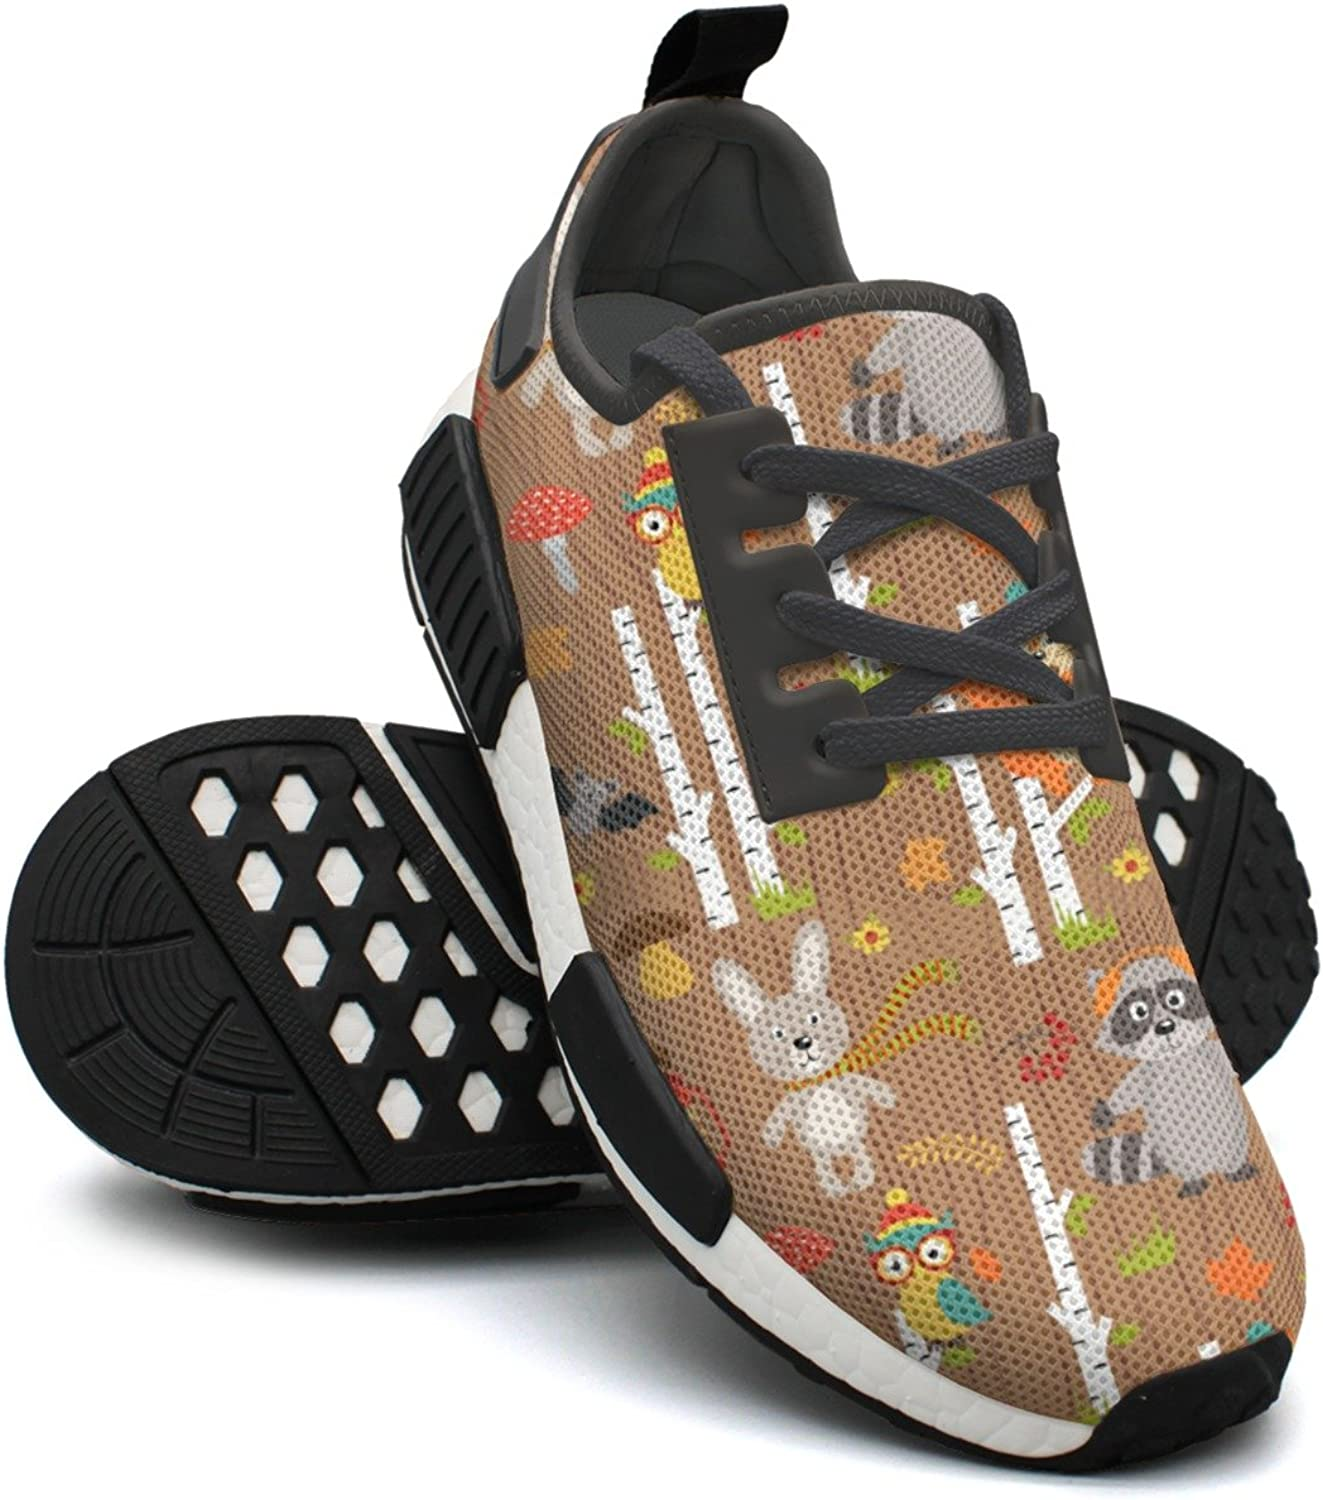 Fox Bear Rabbit Bats Are In The Forest Ladies Jogging shoes Nmd Cute Gym shoes